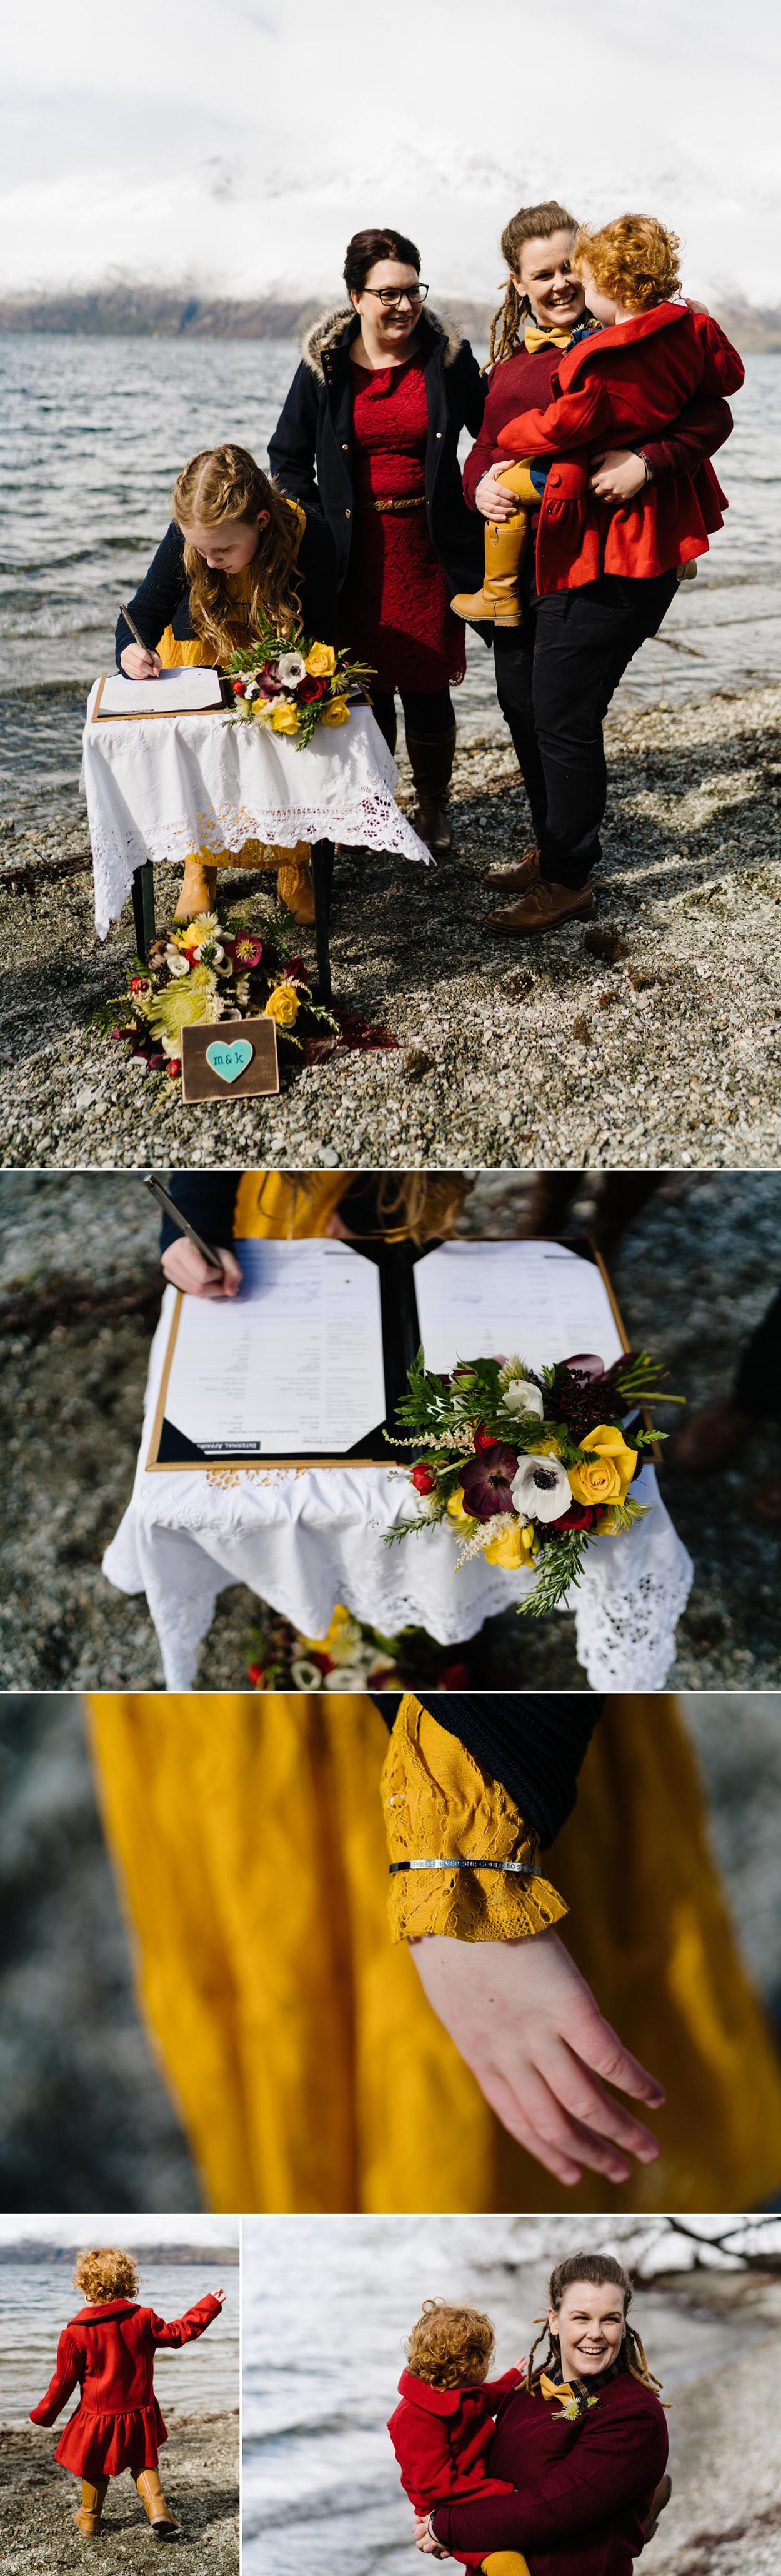 Queenstown lakeside elopement